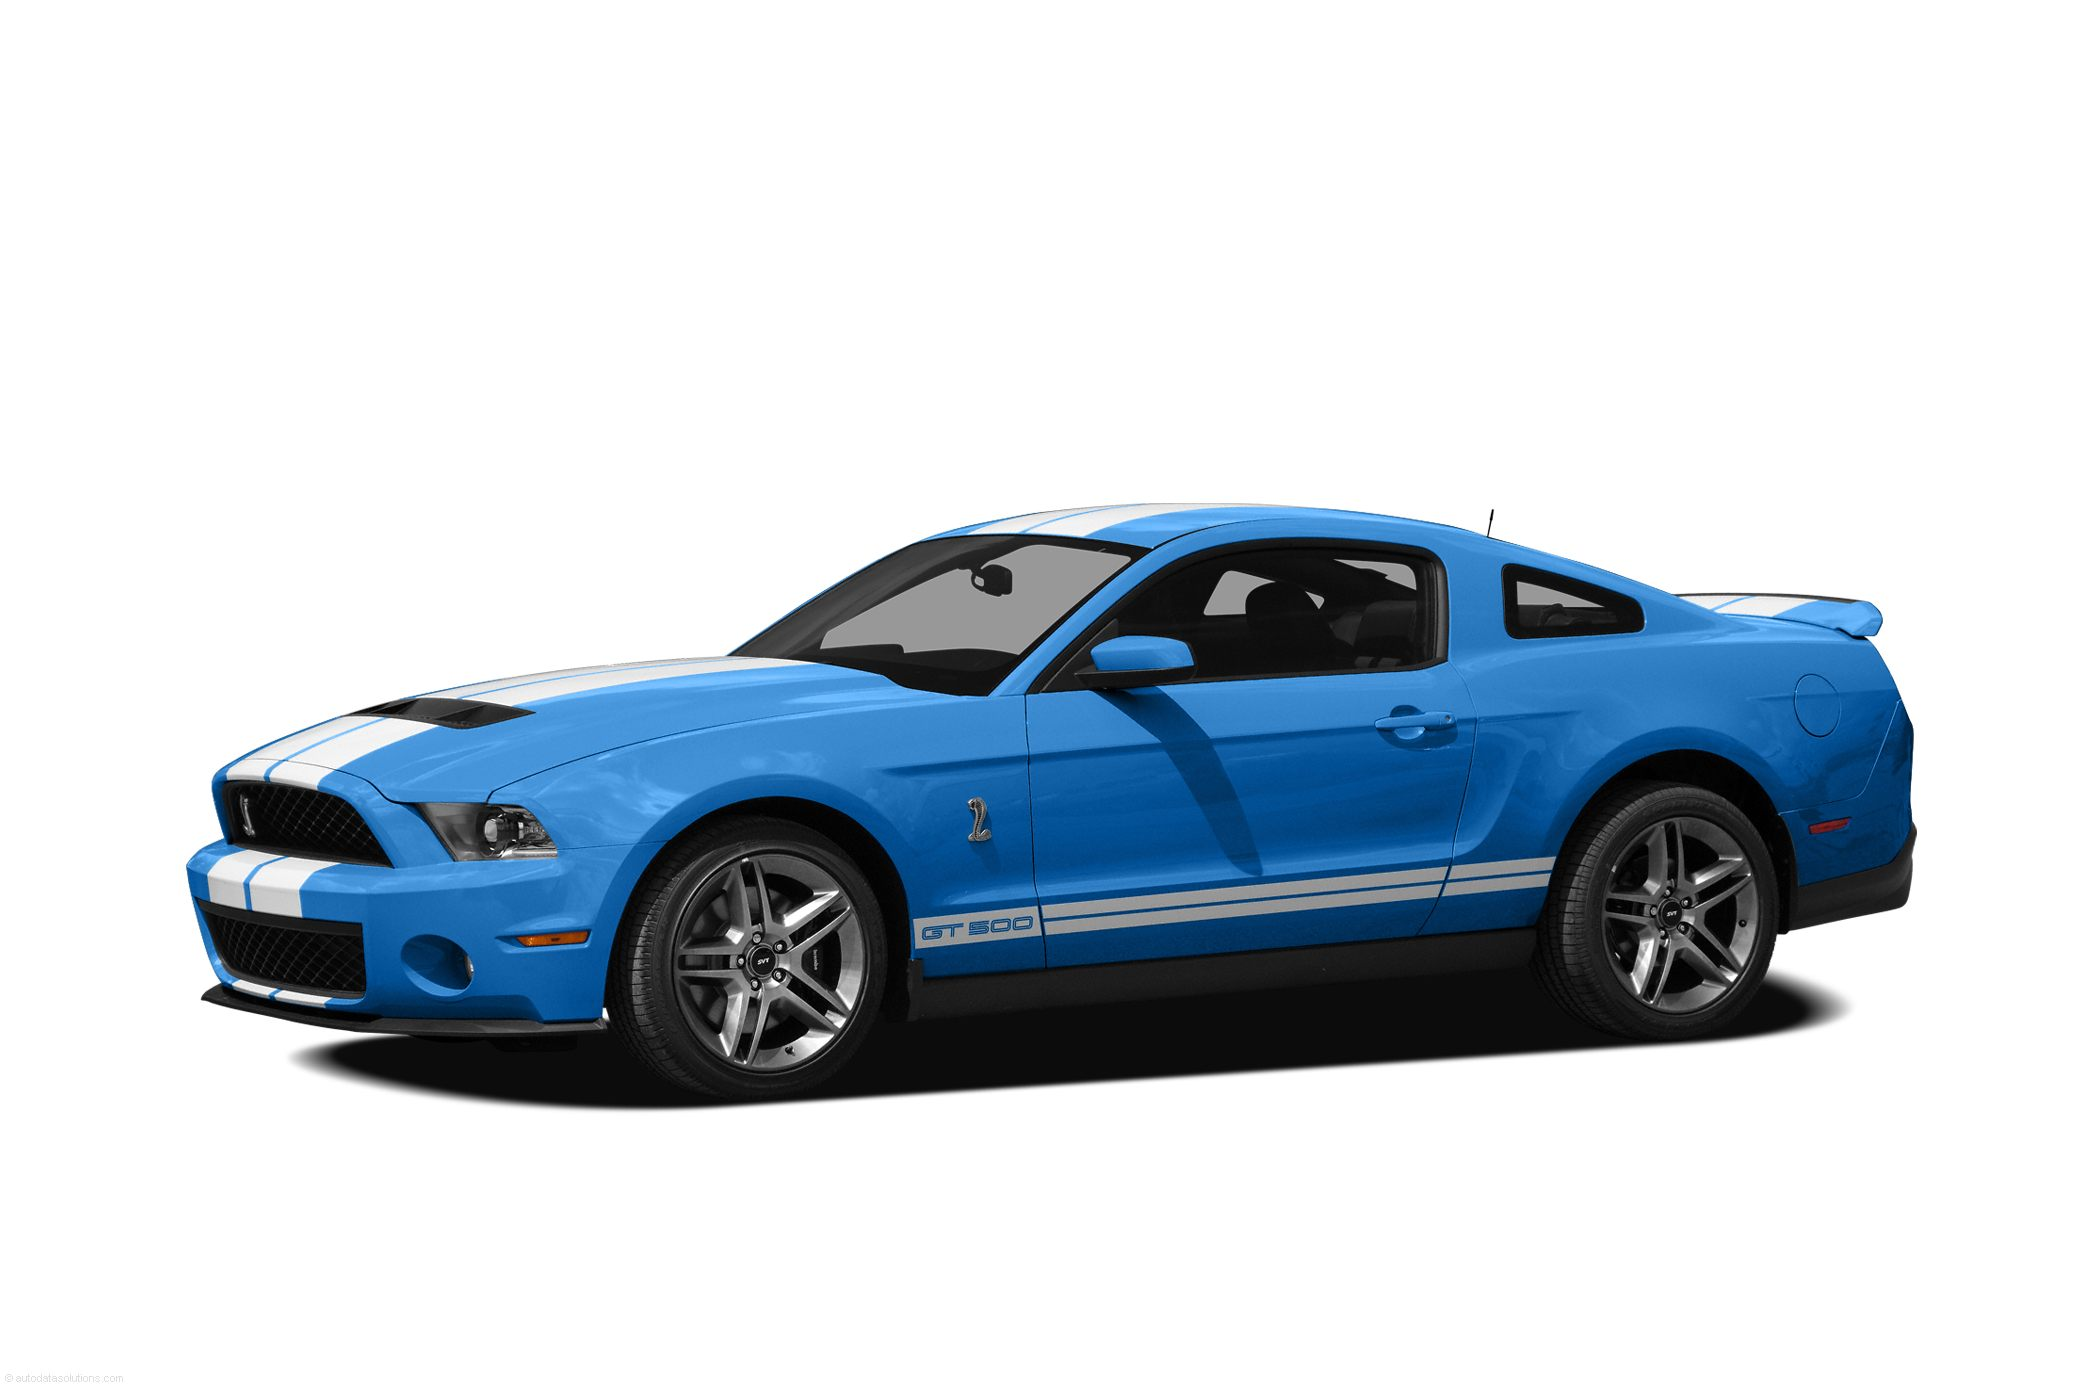 2011 Ford Shelby Gt500 #13